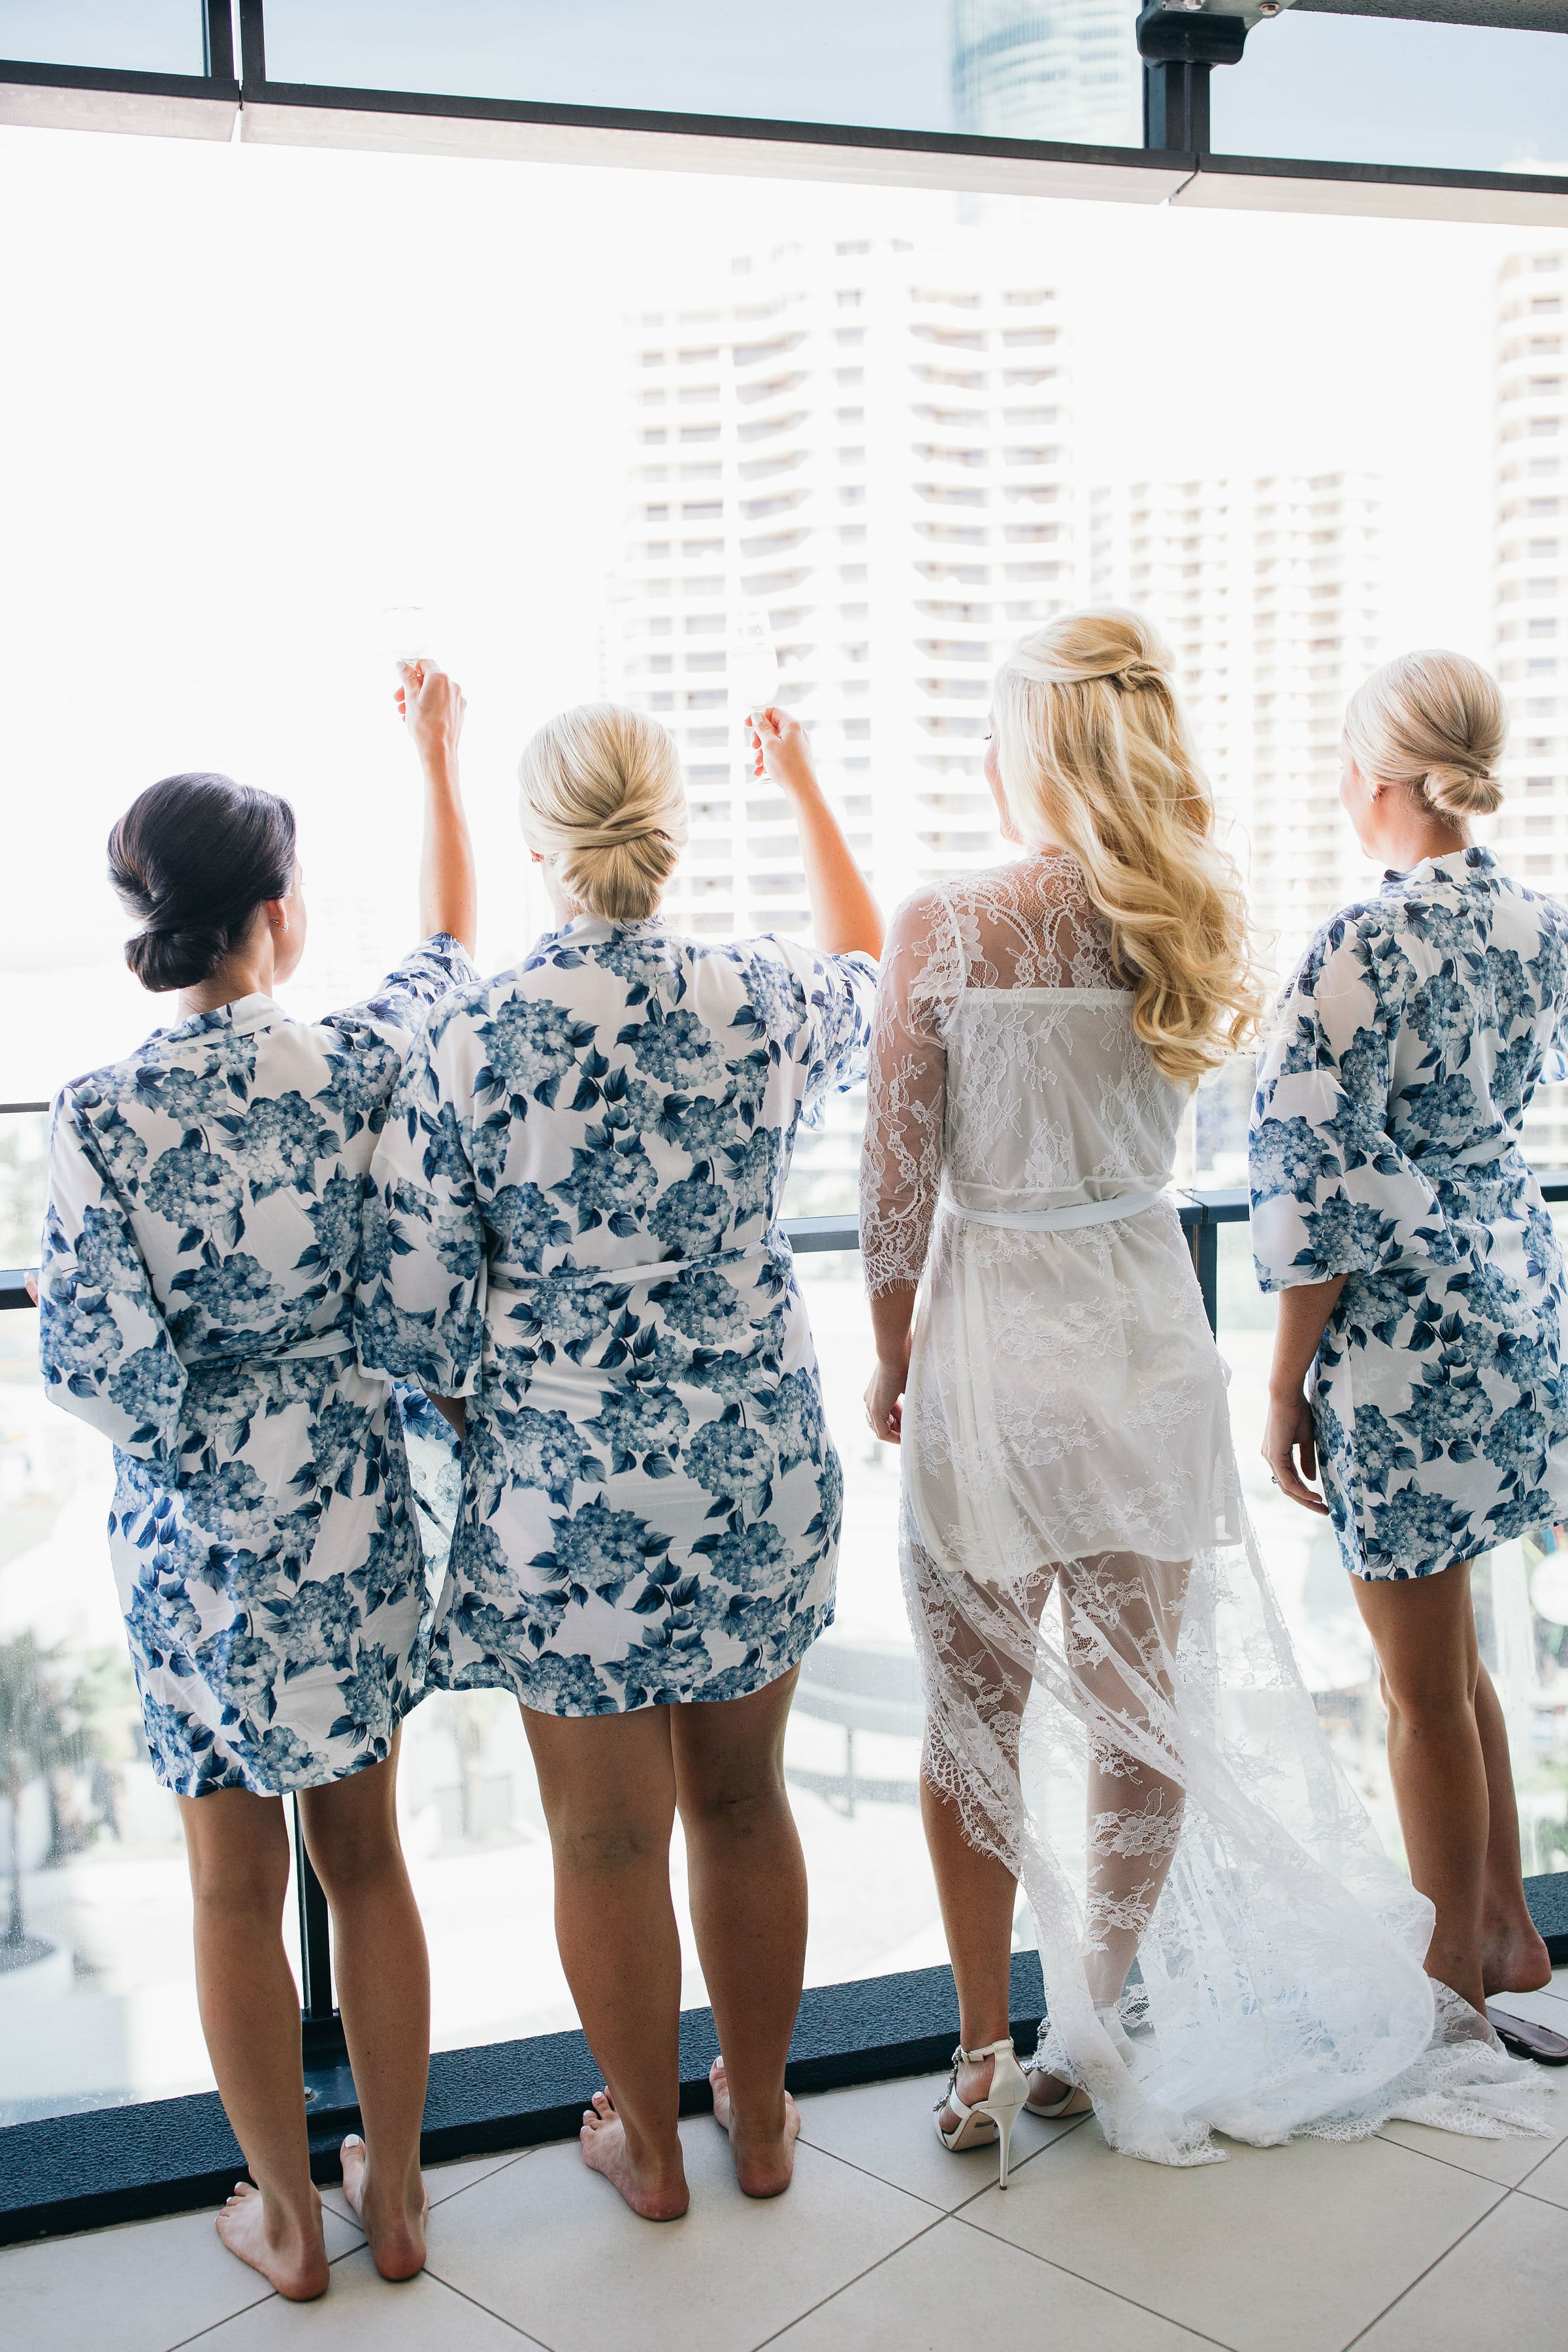 The Maid of Honor's Ultimate Guide to Hosting the Bridal Shower - Bridal Shower Inspo on Love Maggie Blog